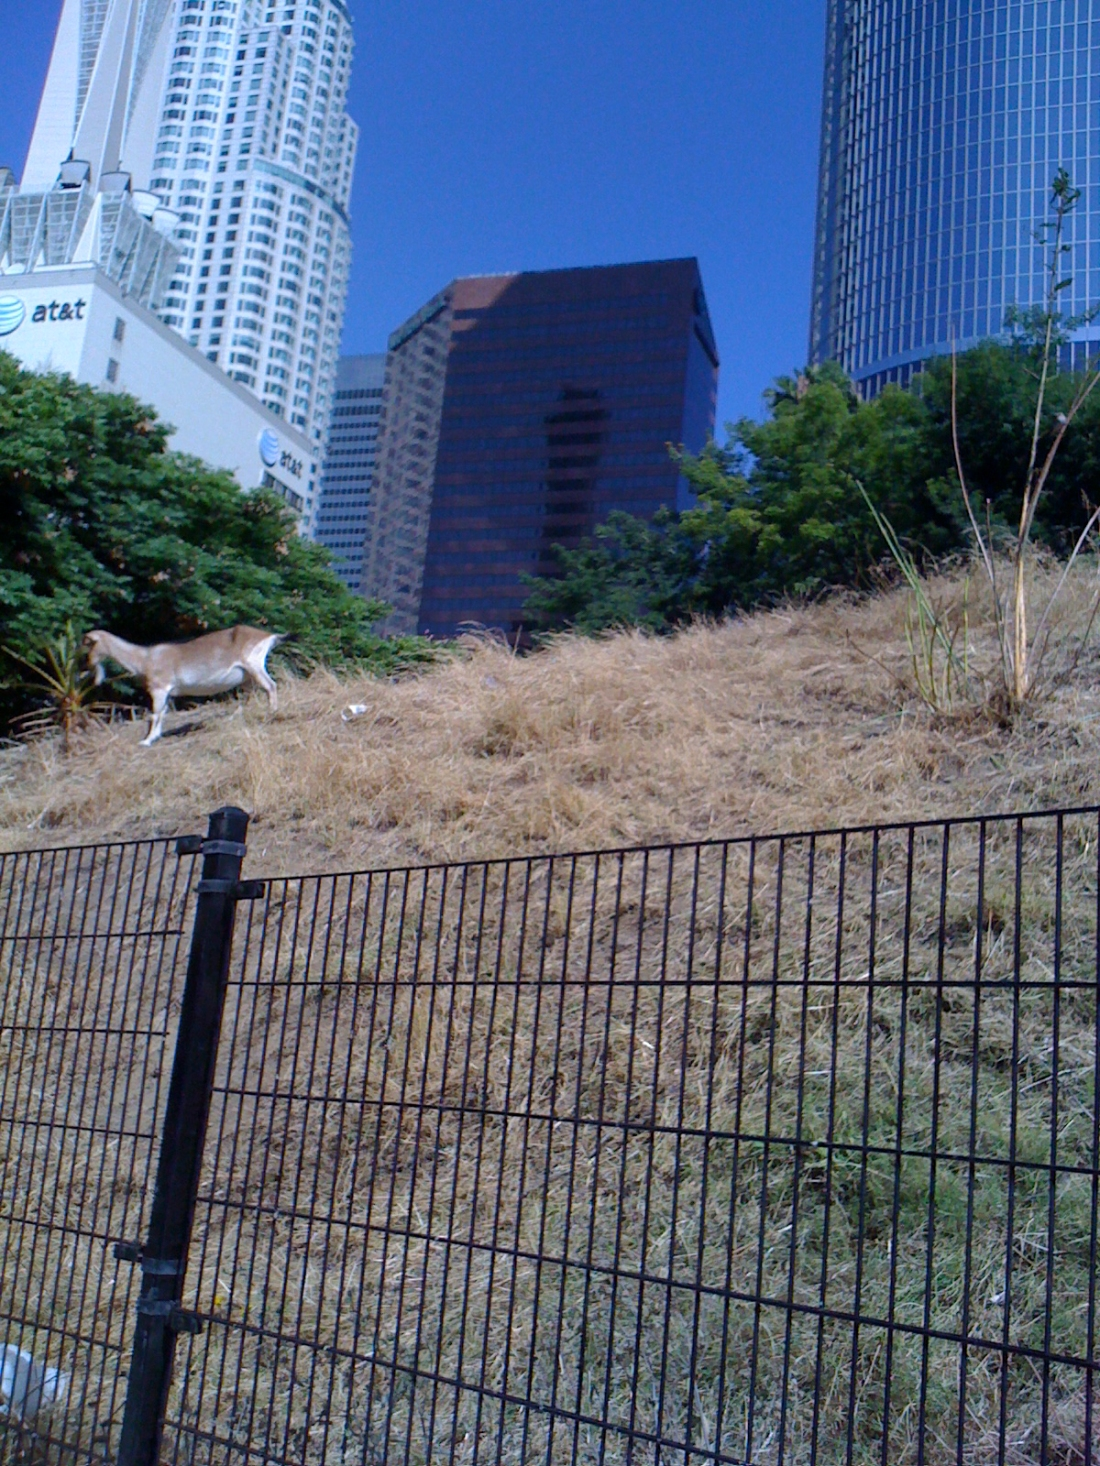 Goat in Downtown LA